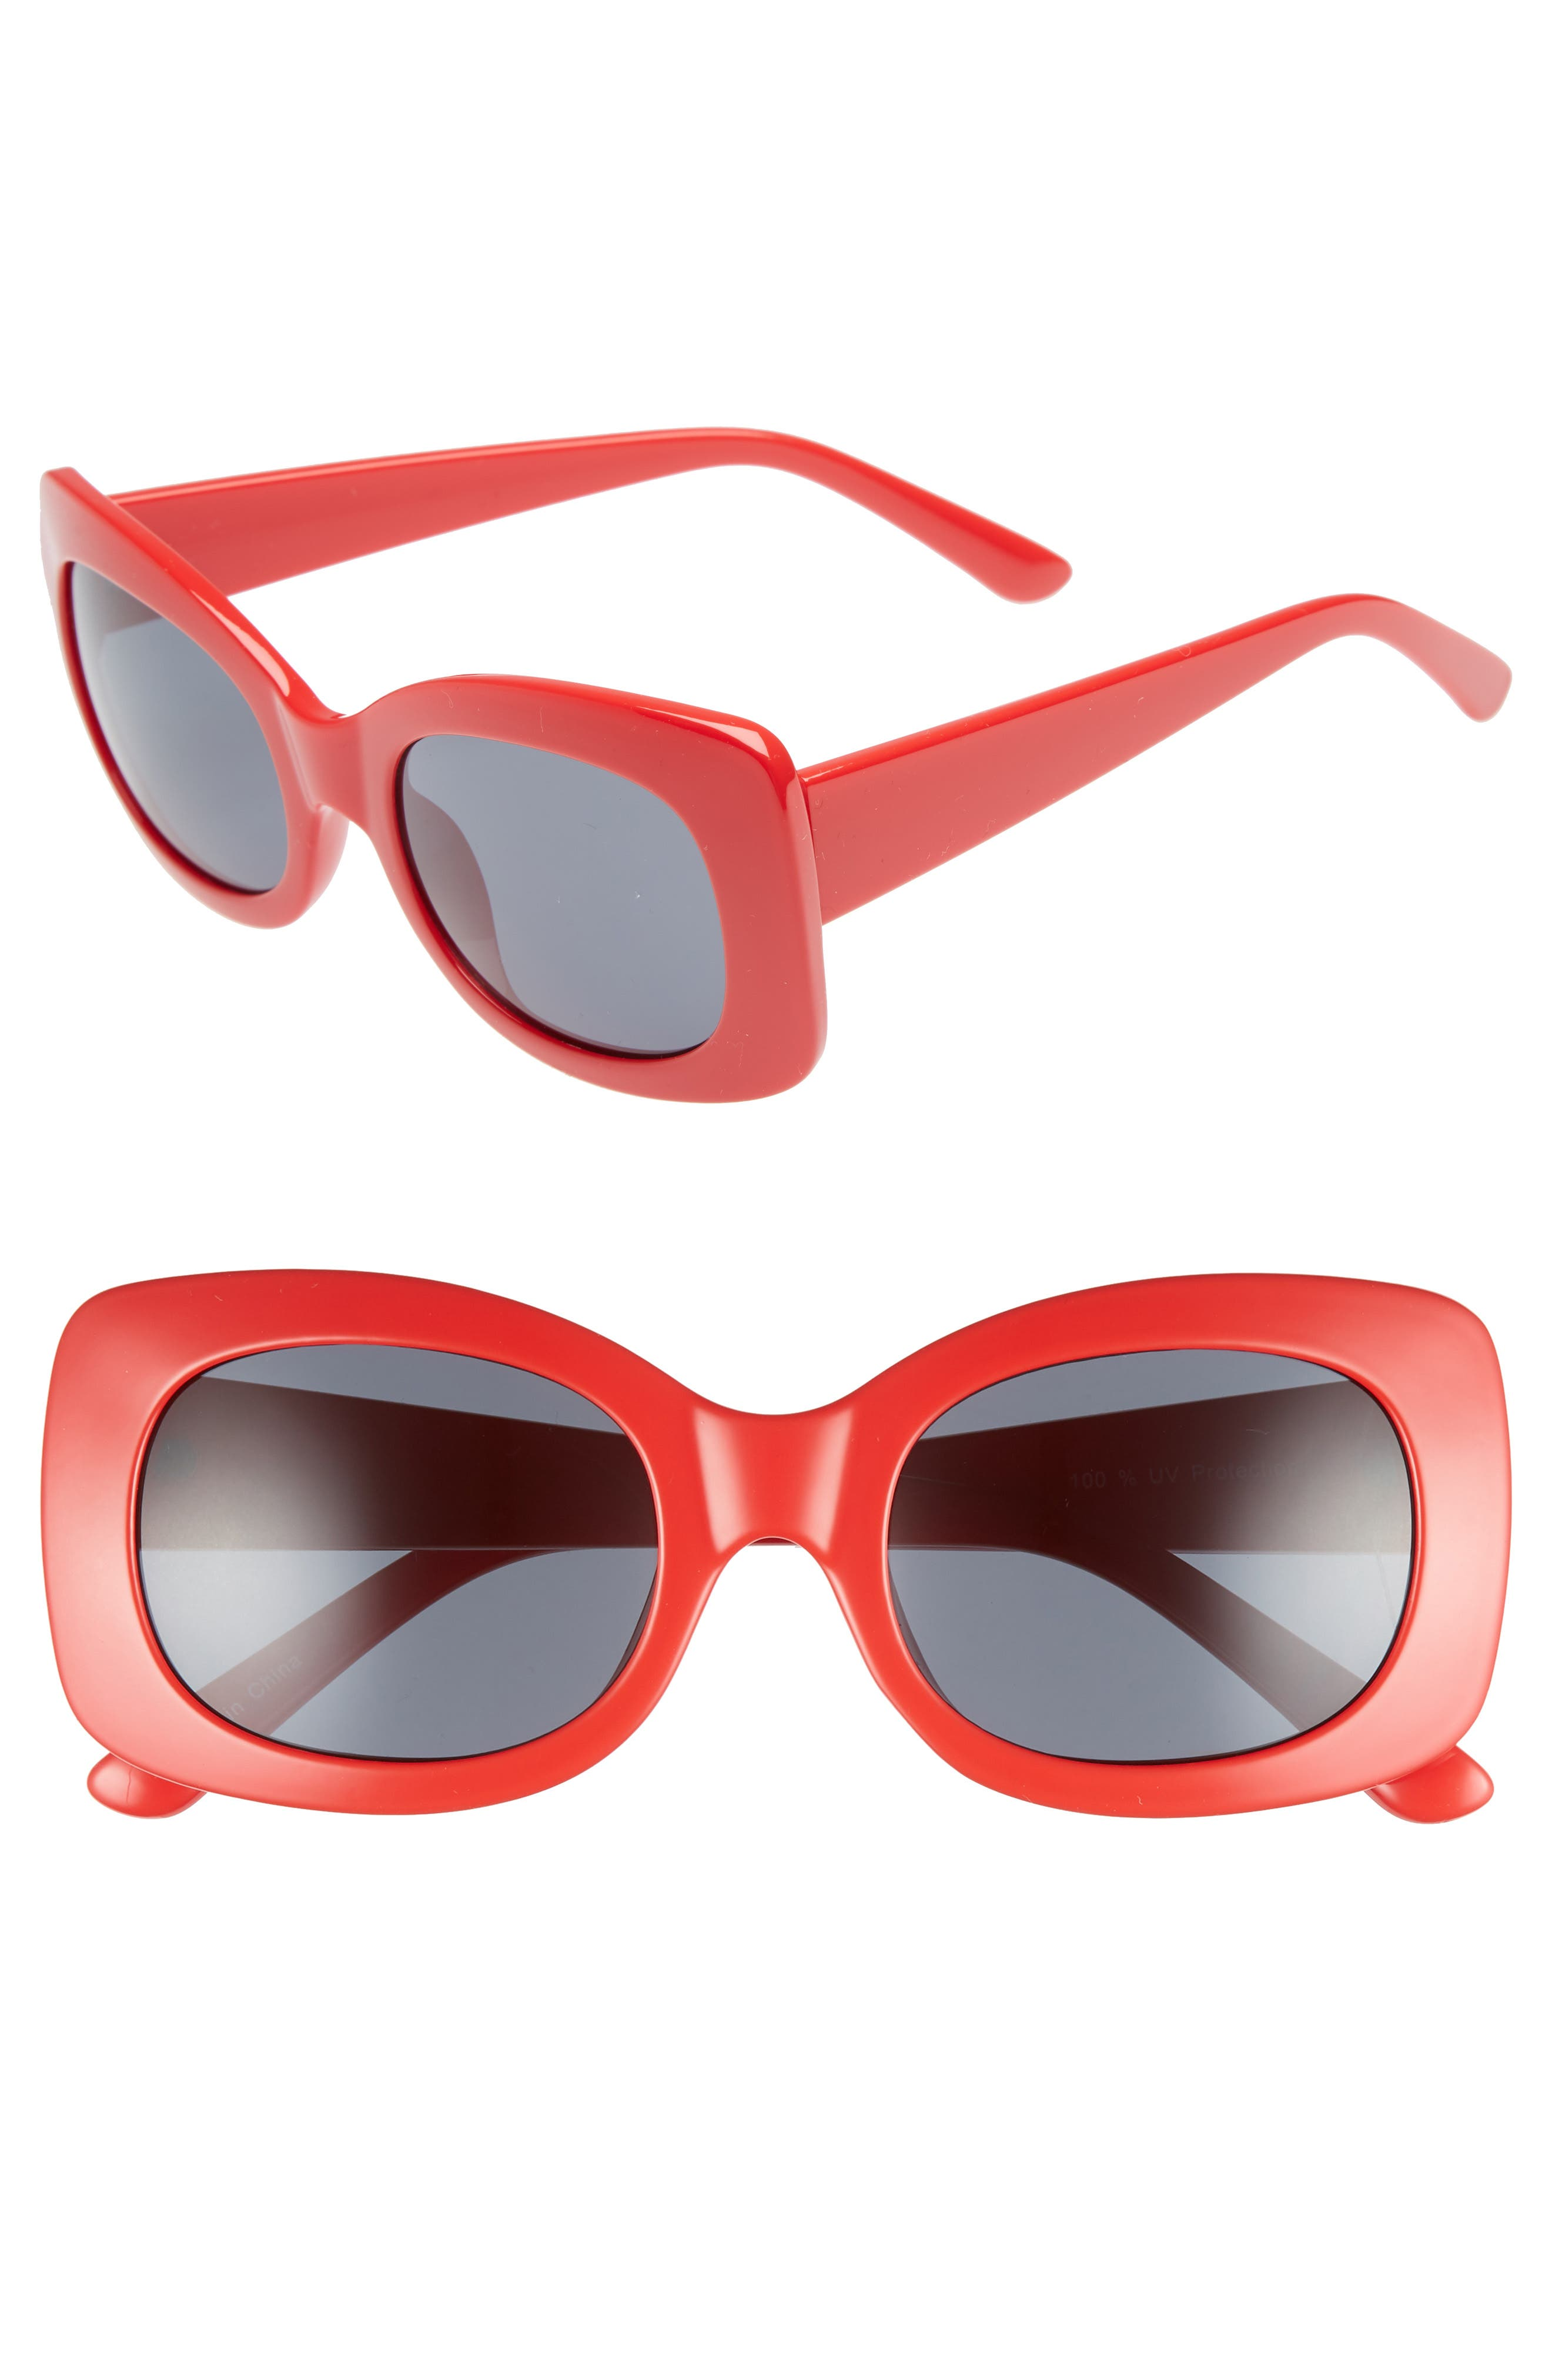 51mm Square Sunglasses,                         Main,                         color, RED/ BLACK